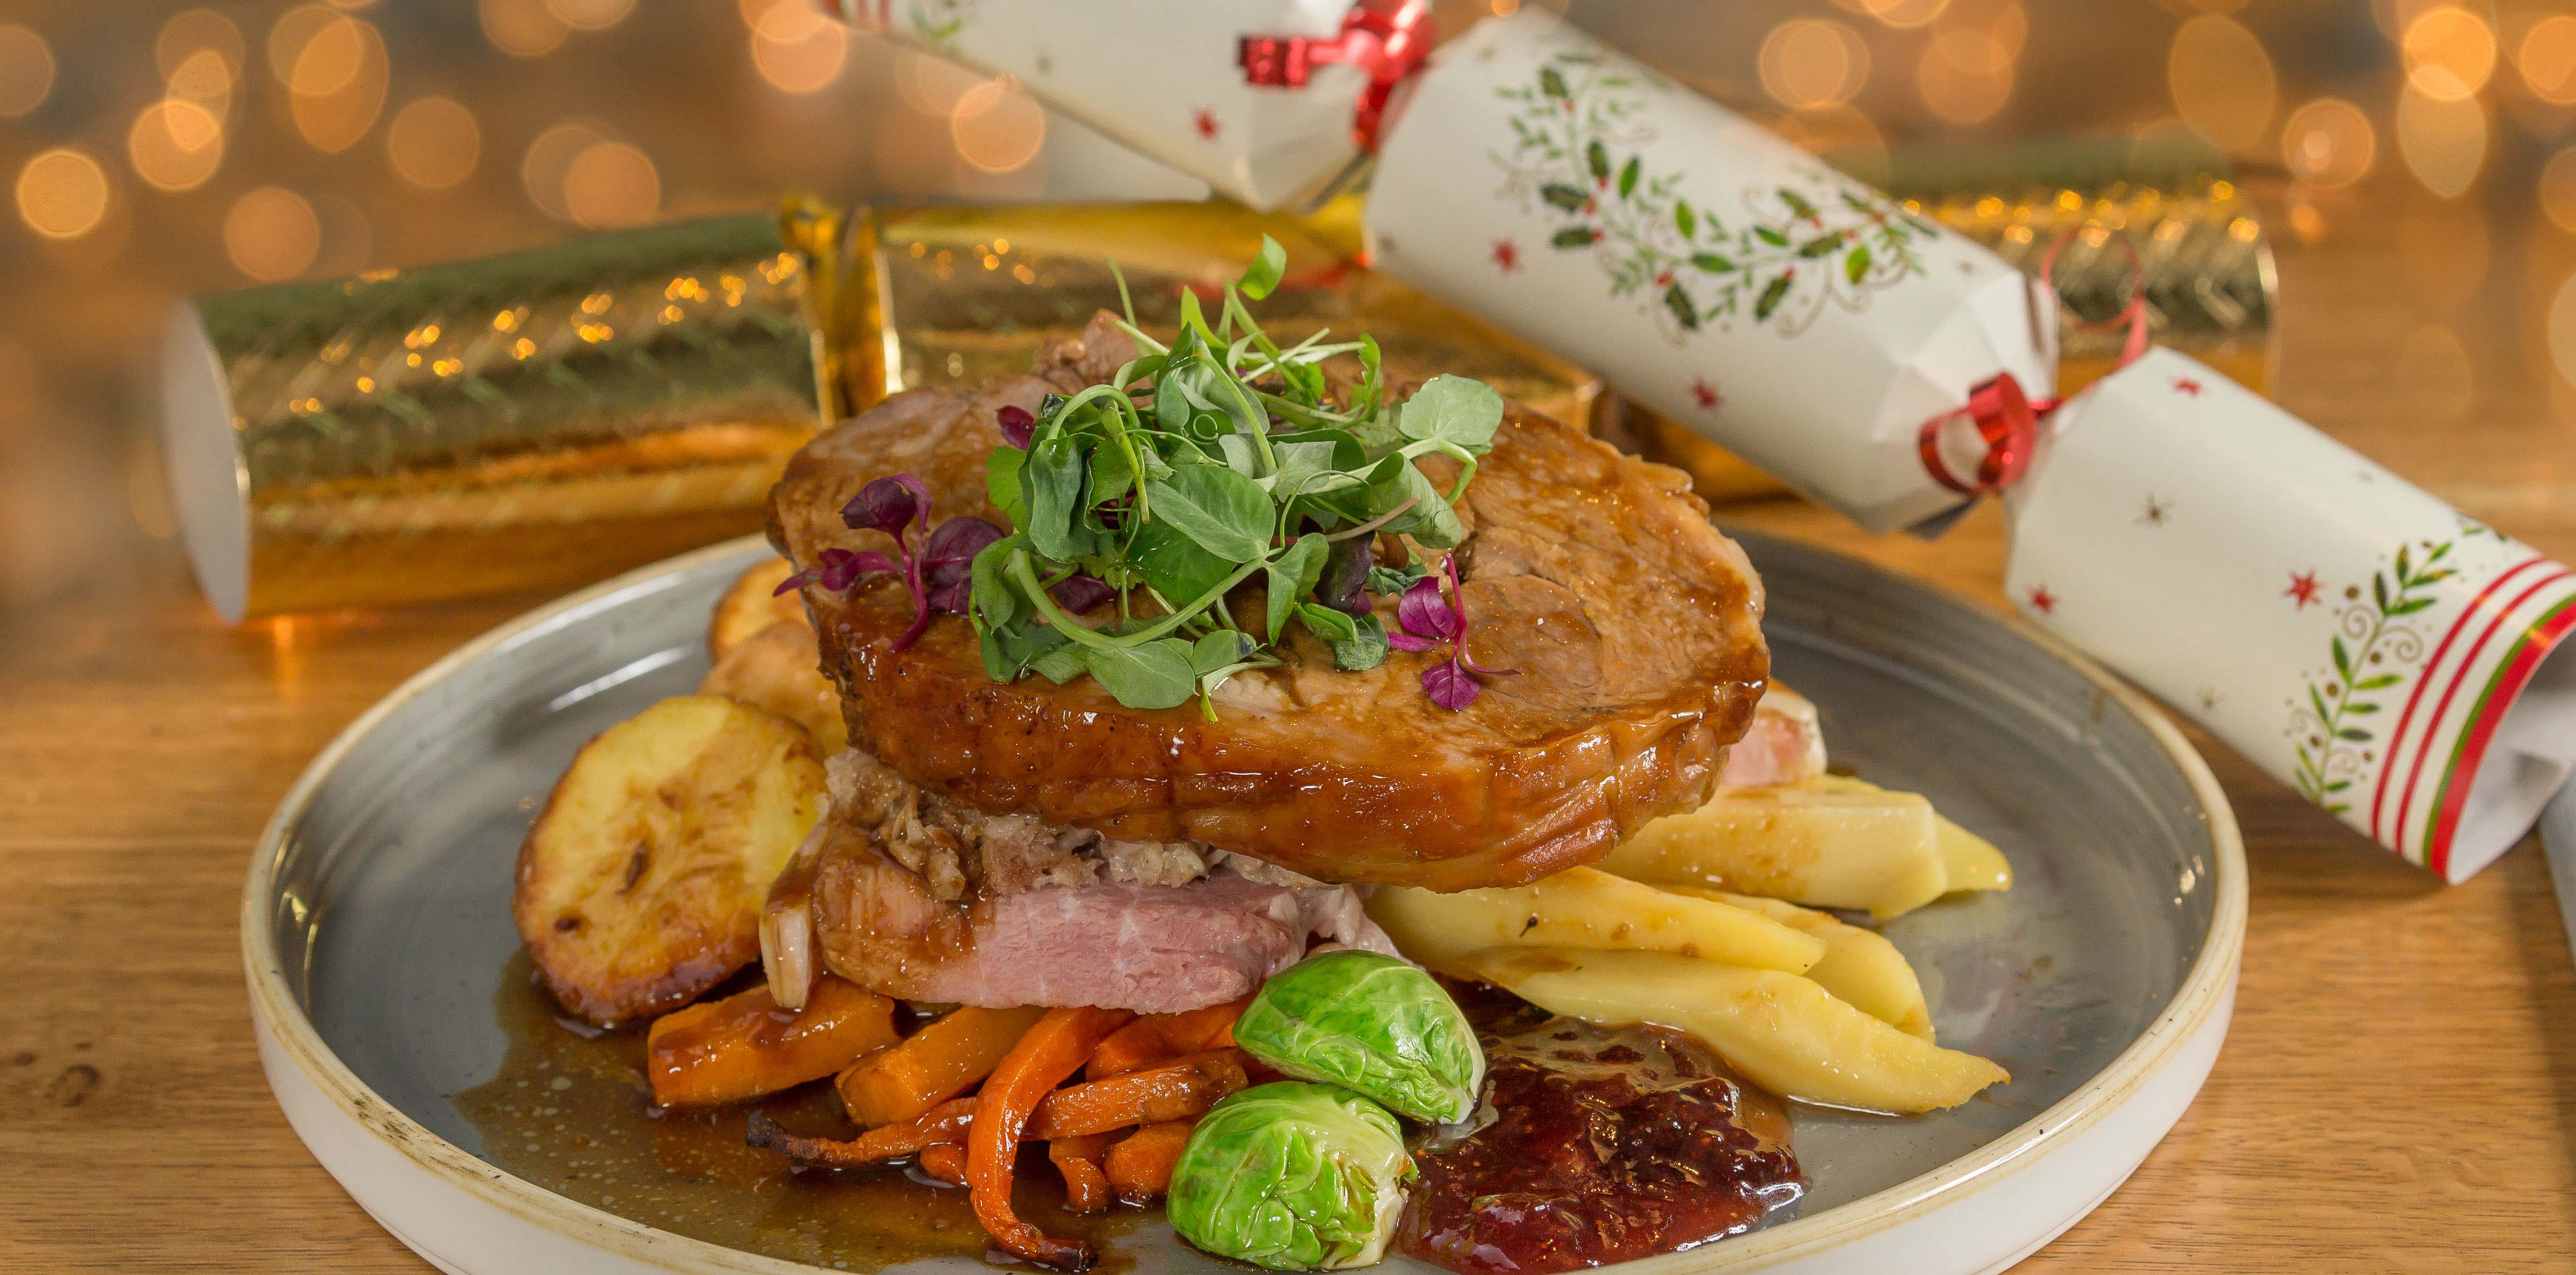 SCOTTISH LUNCH MENU - TWO COURSES £24